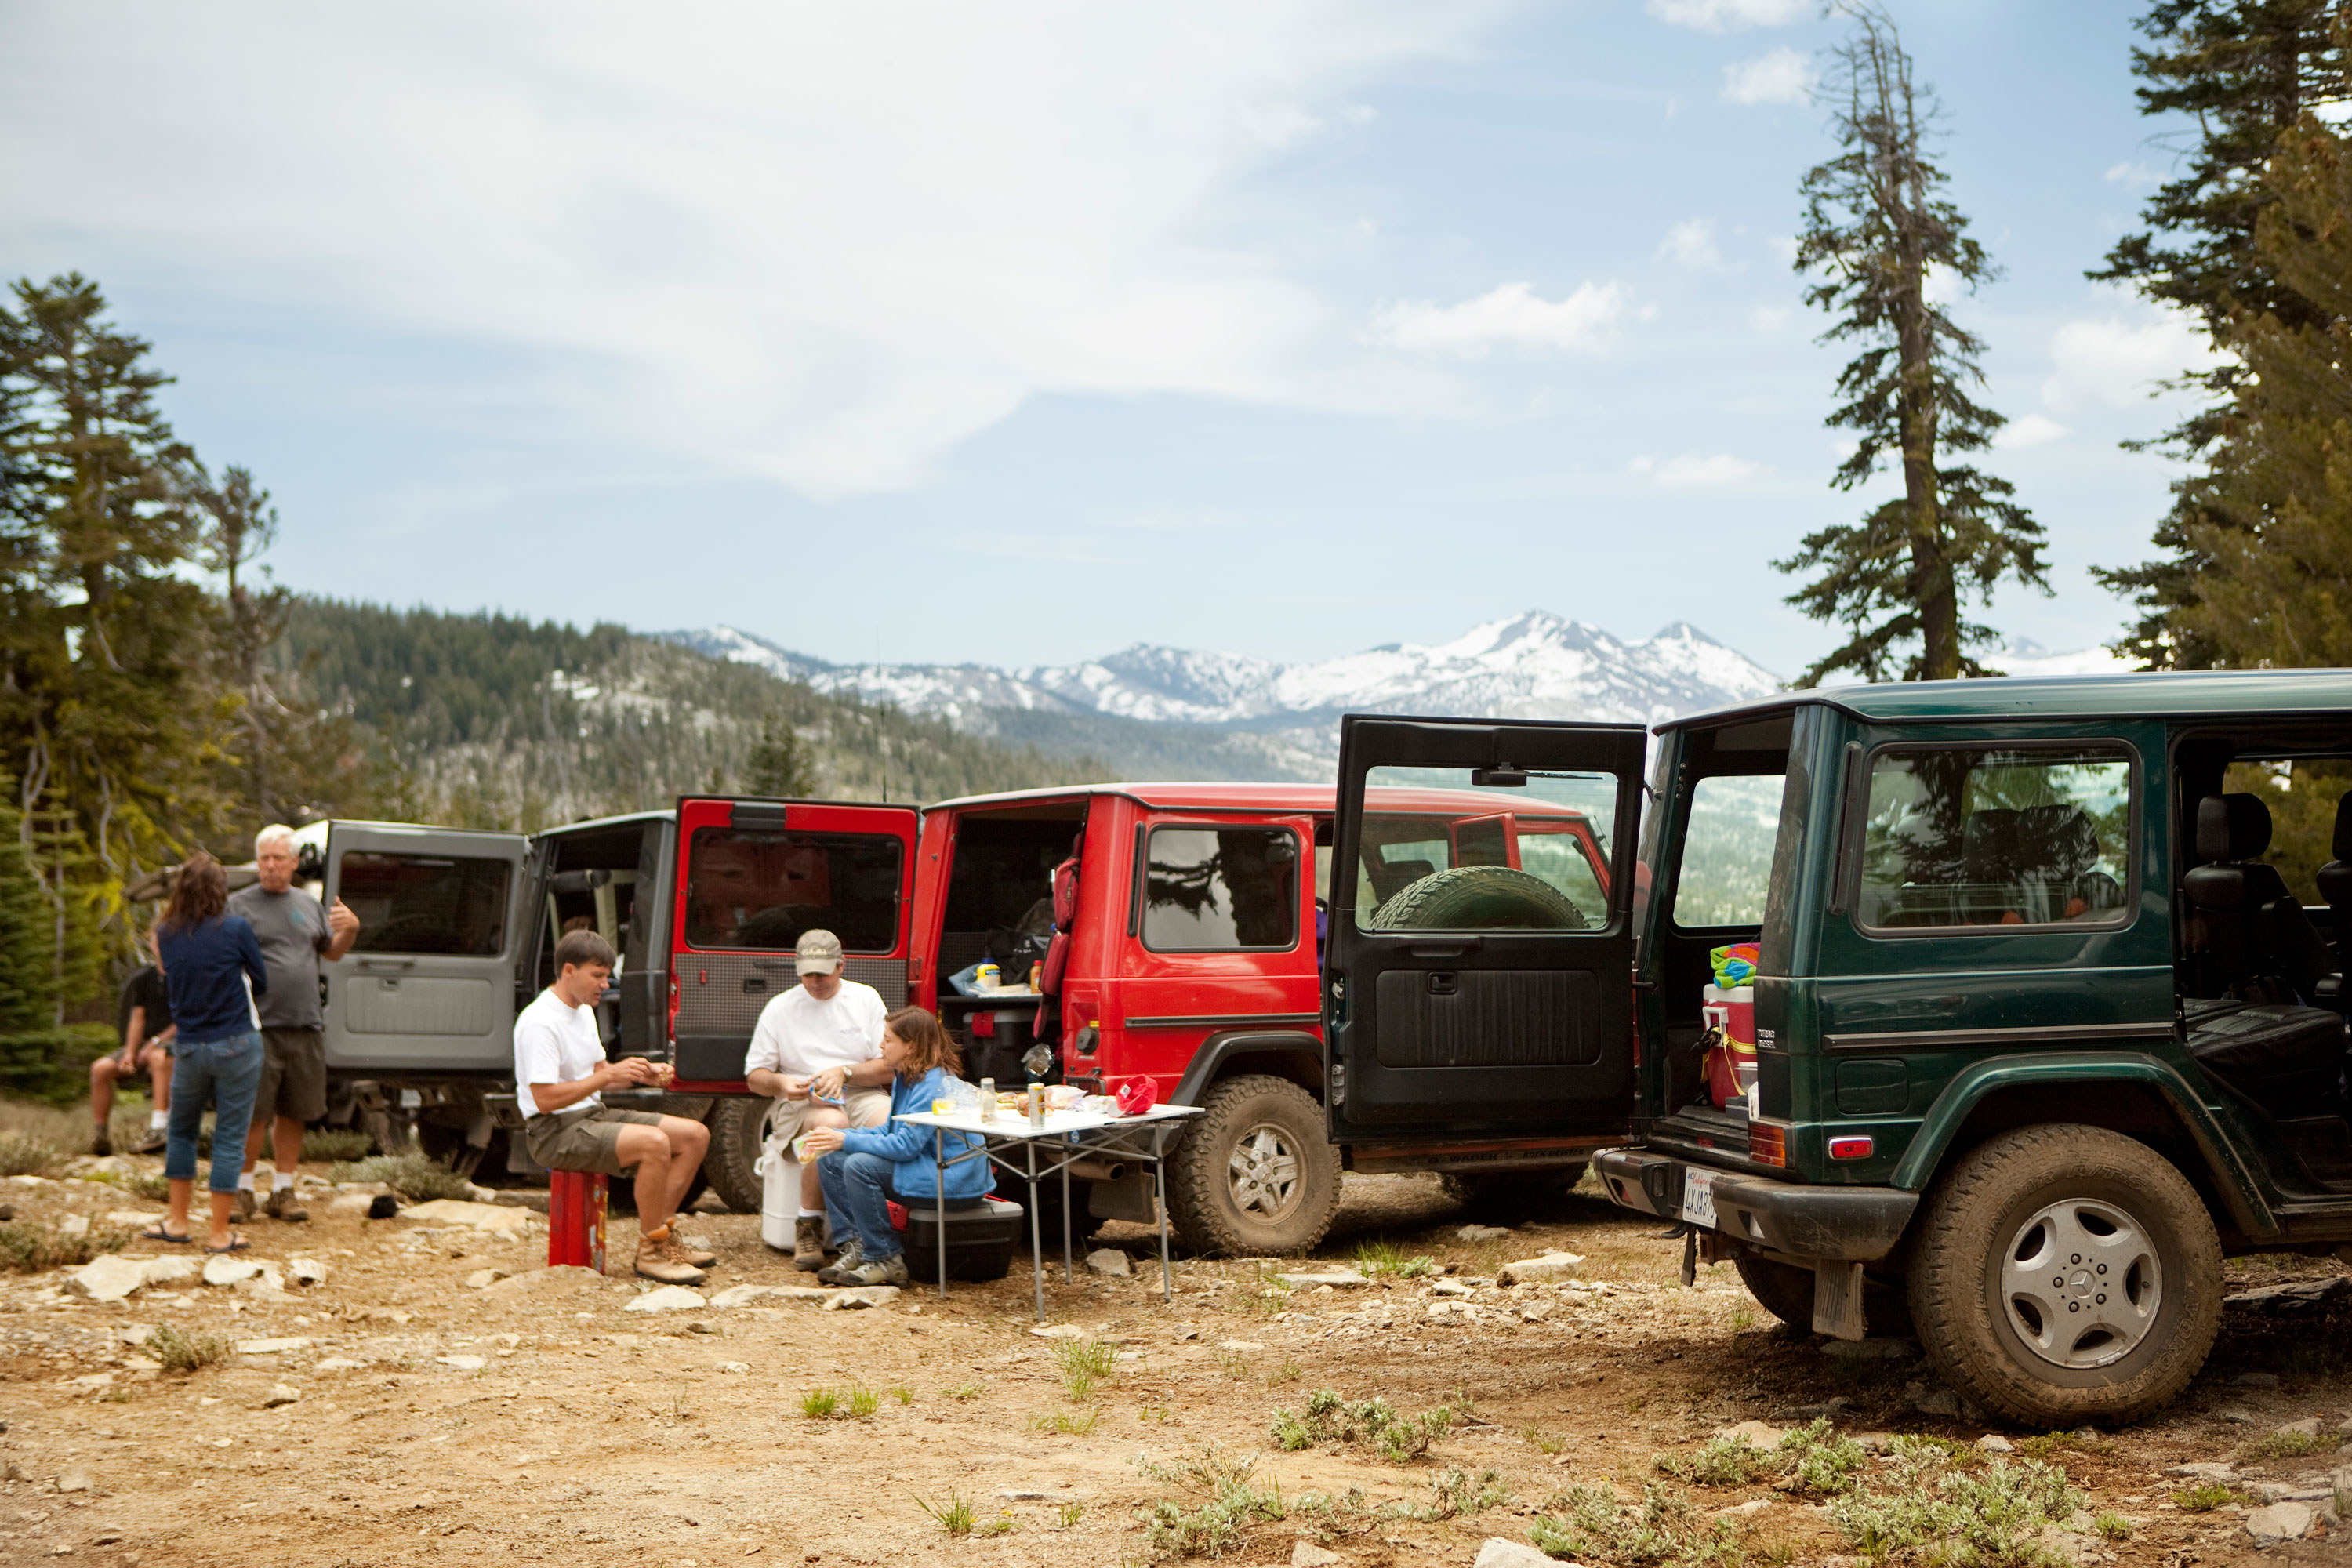 Eating in the wilderness is rewarding. Especially atop an 8000-foot ridge.